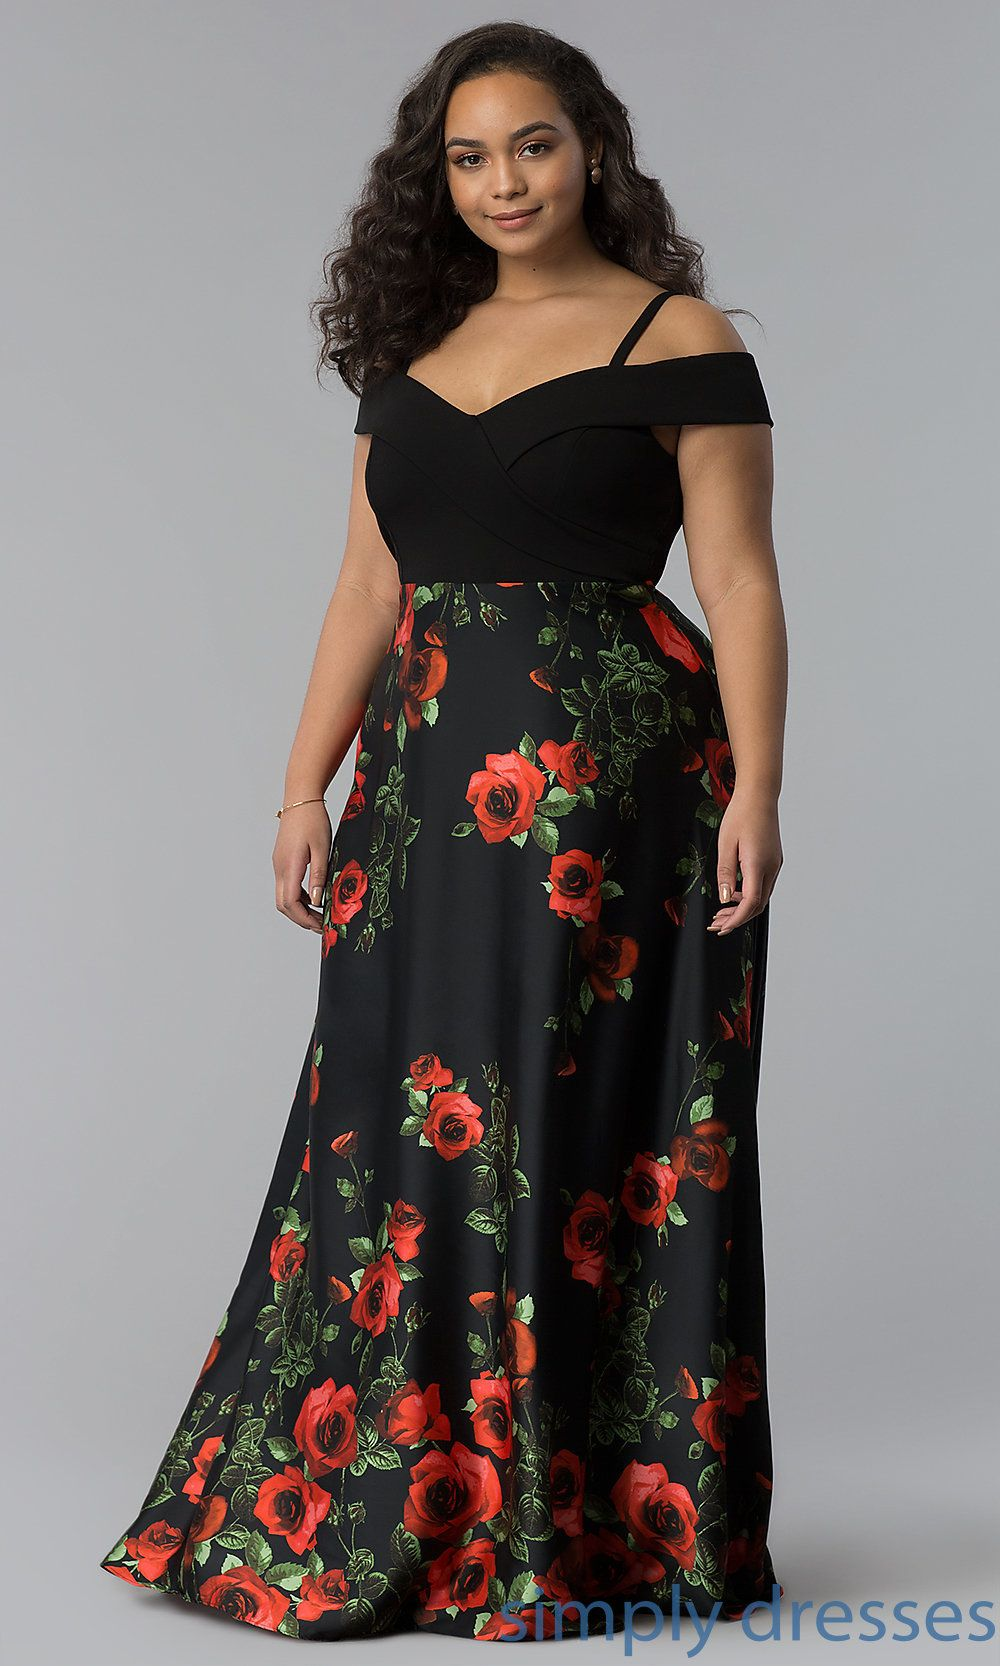 69dbd578200 Long Homecoming Dresses Plus Size - Gomes Weine AG